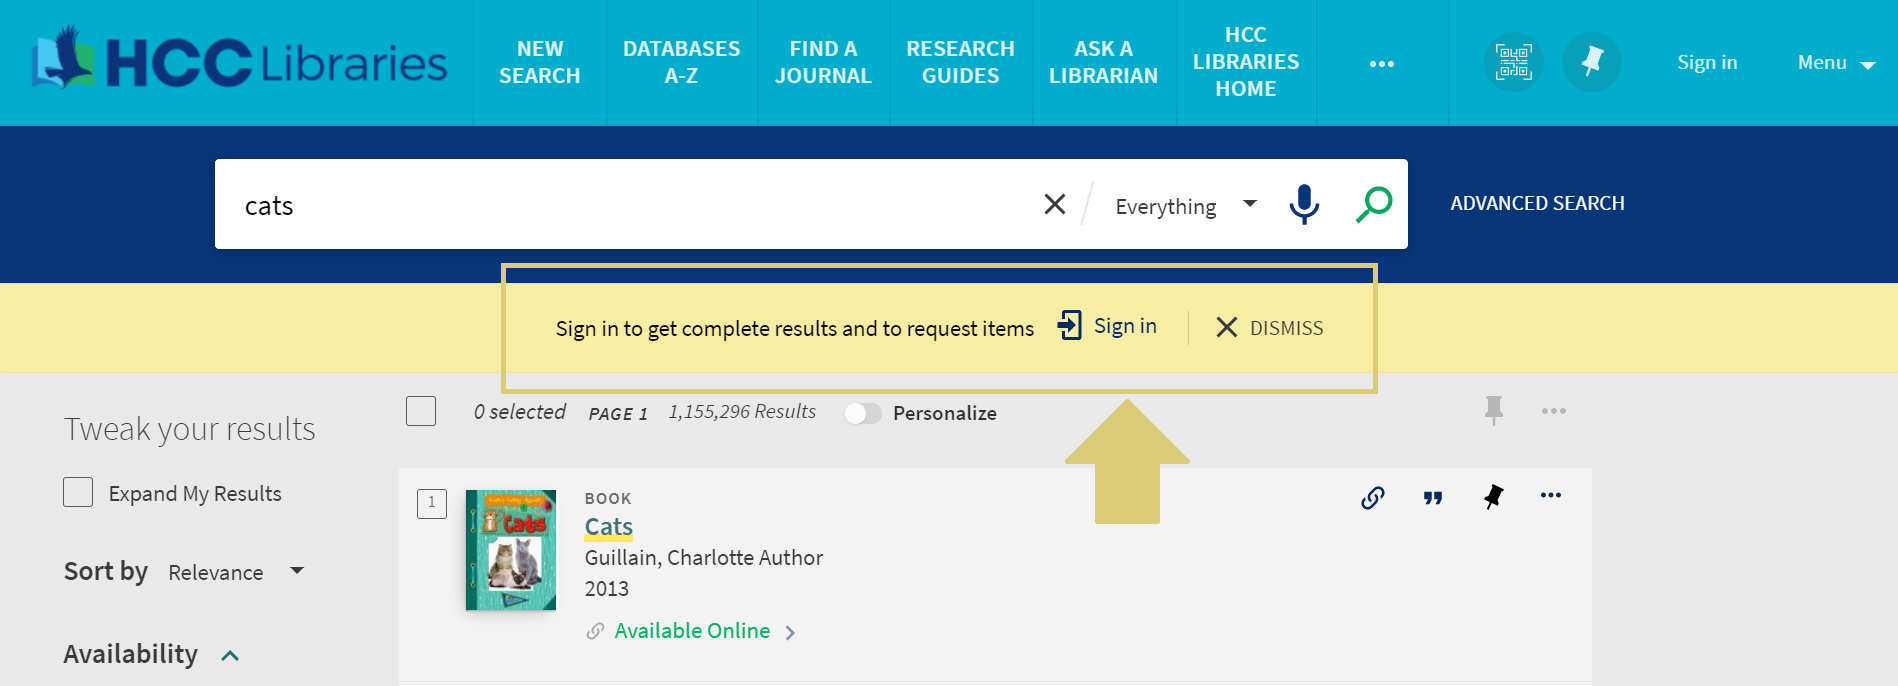 Screen capture of the HCC library catalog with a yellow box around the sign in link, as well as a yellow arrow pointing to the sign in link